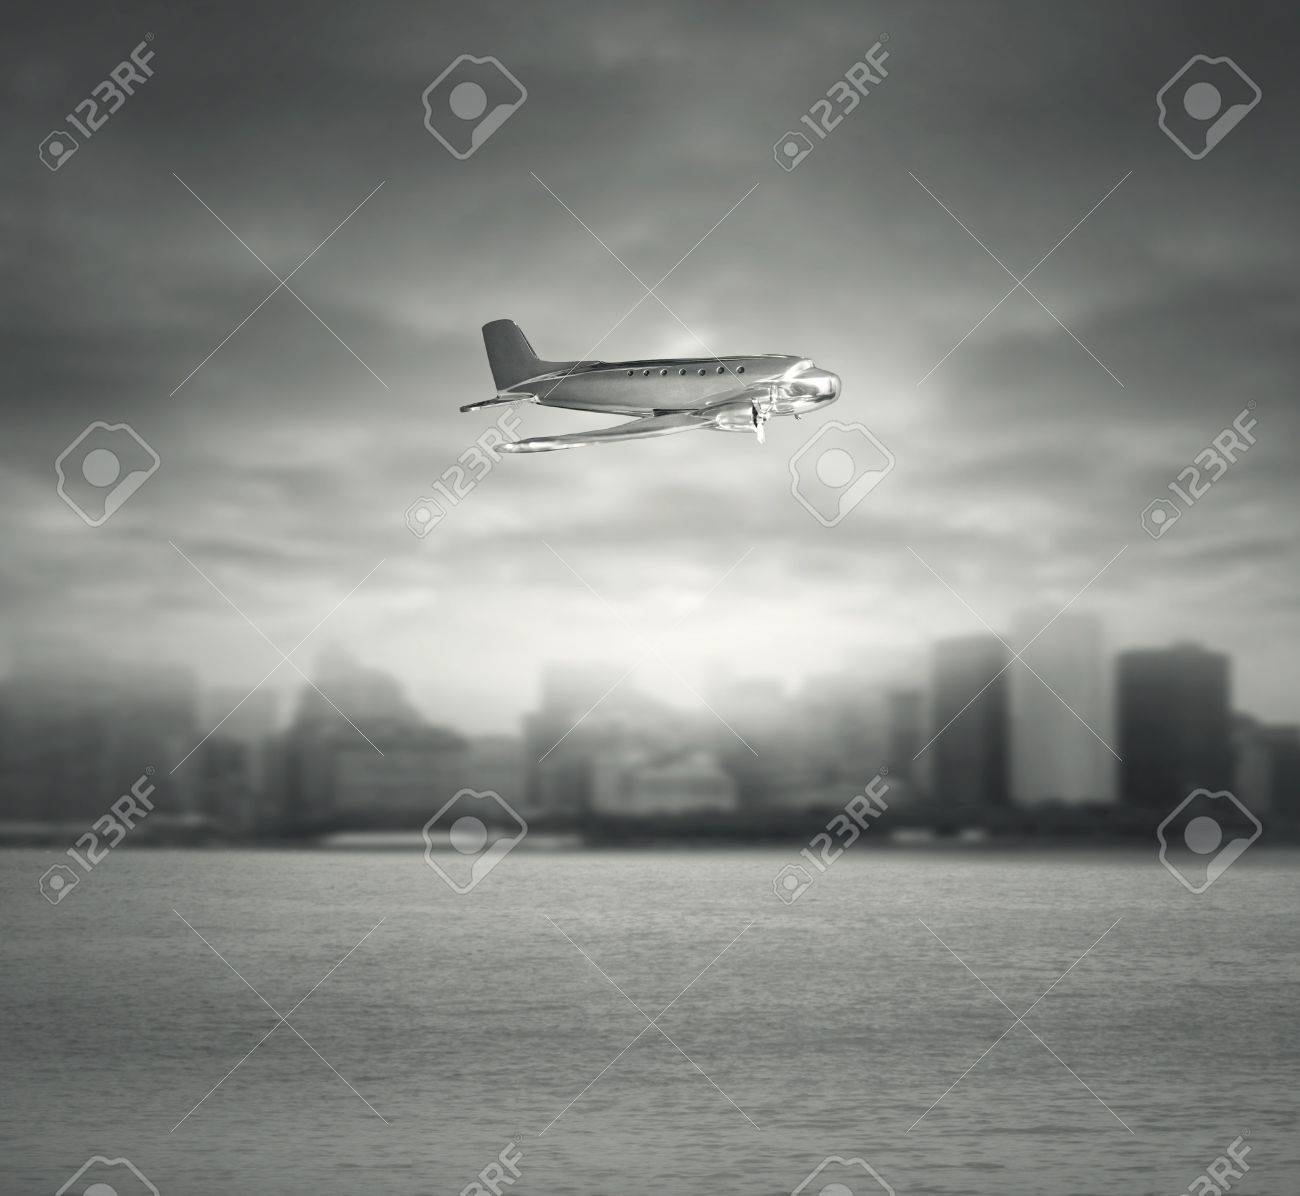 Artistic Composition Of A Vintage Airplane Toy In Flight Under The Sea With City And